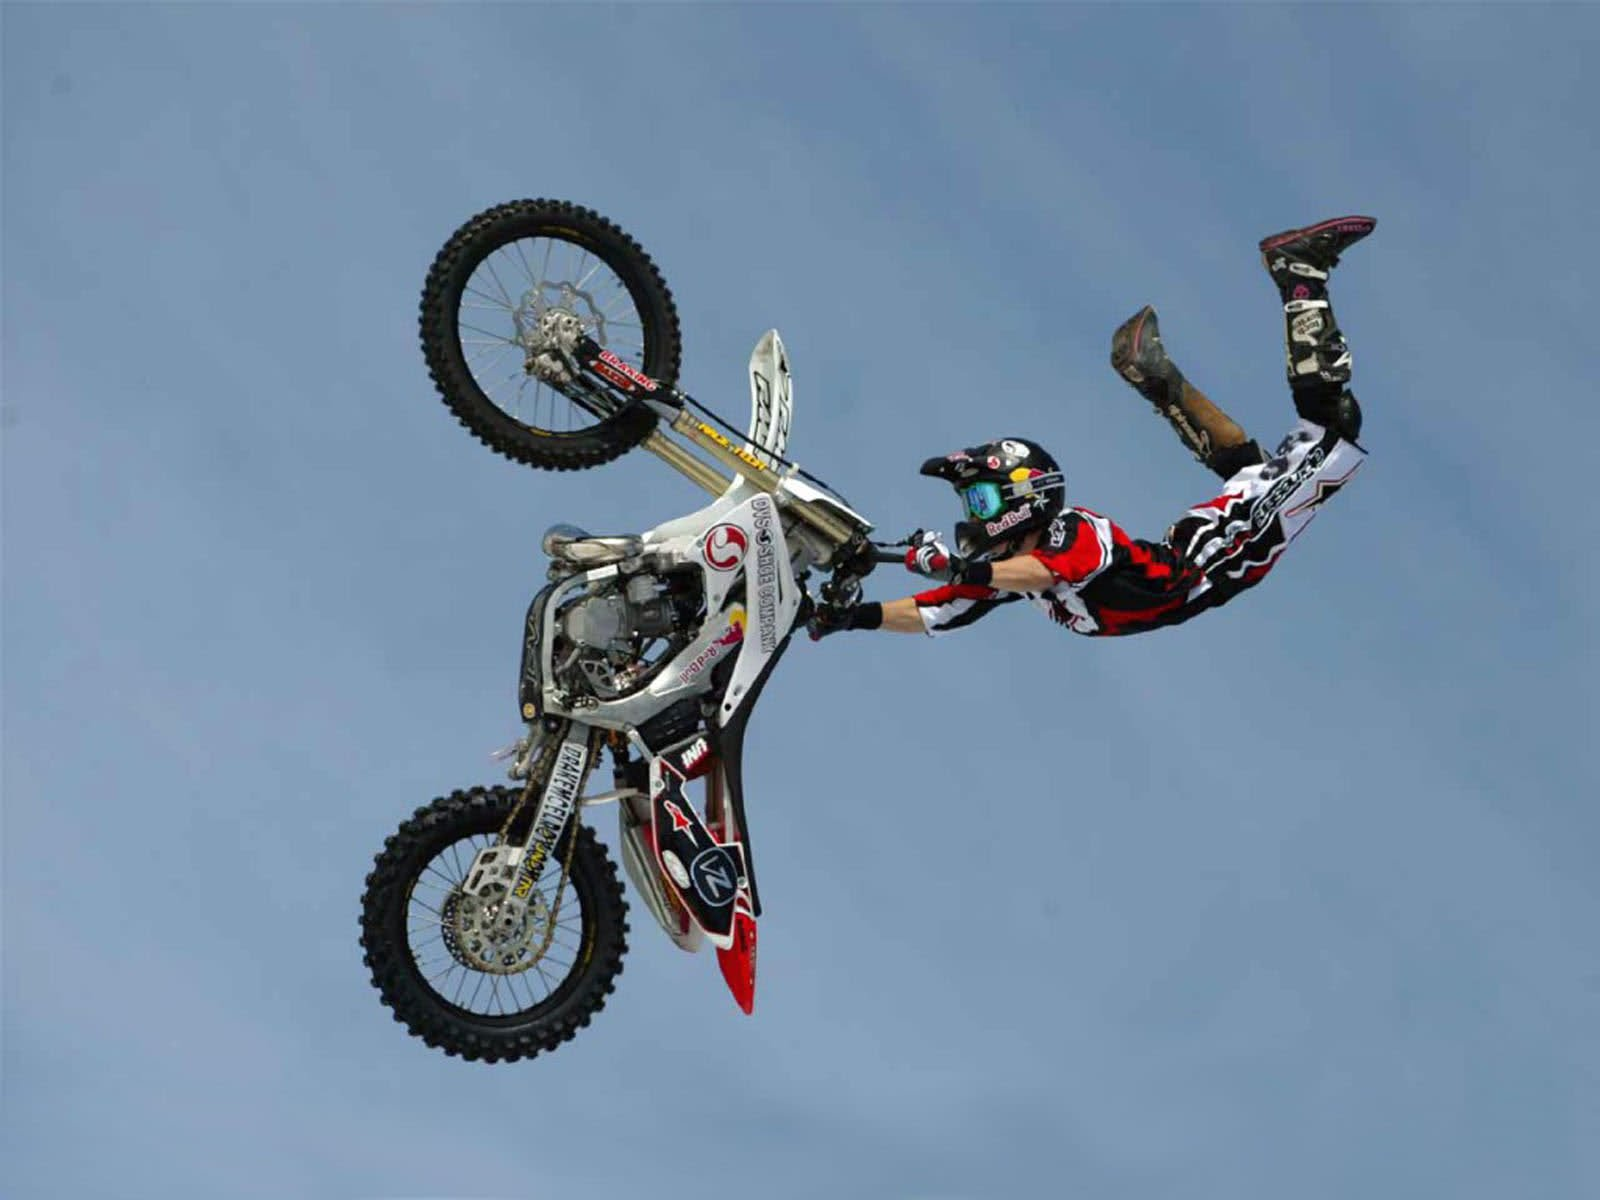 Freestyle Dirtbike Motocross Moto Bike Extreme Motorbike Dirt Wallpaper